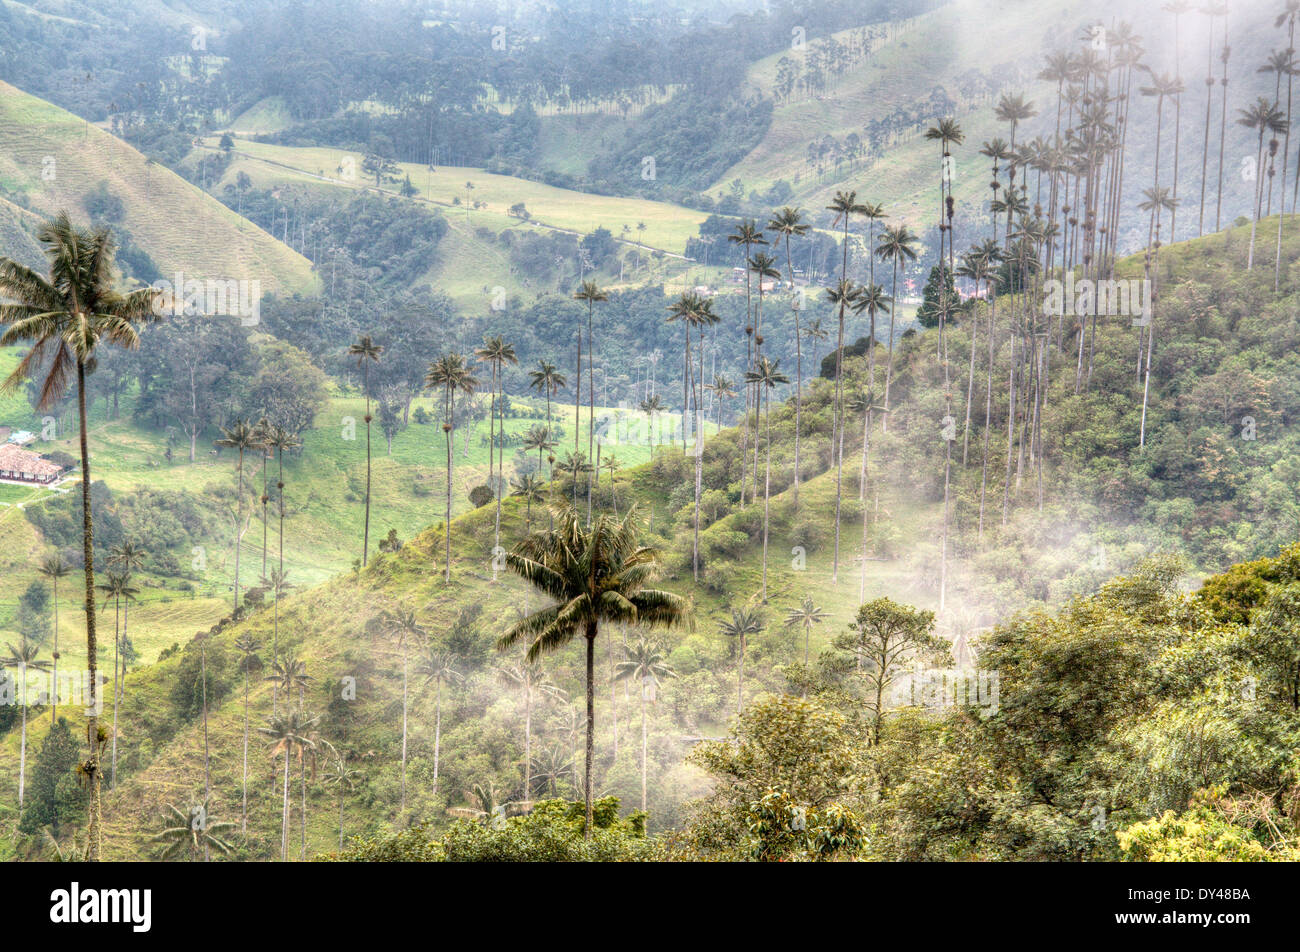 The valley of Cocora near Salento, Colombia - Stock Image